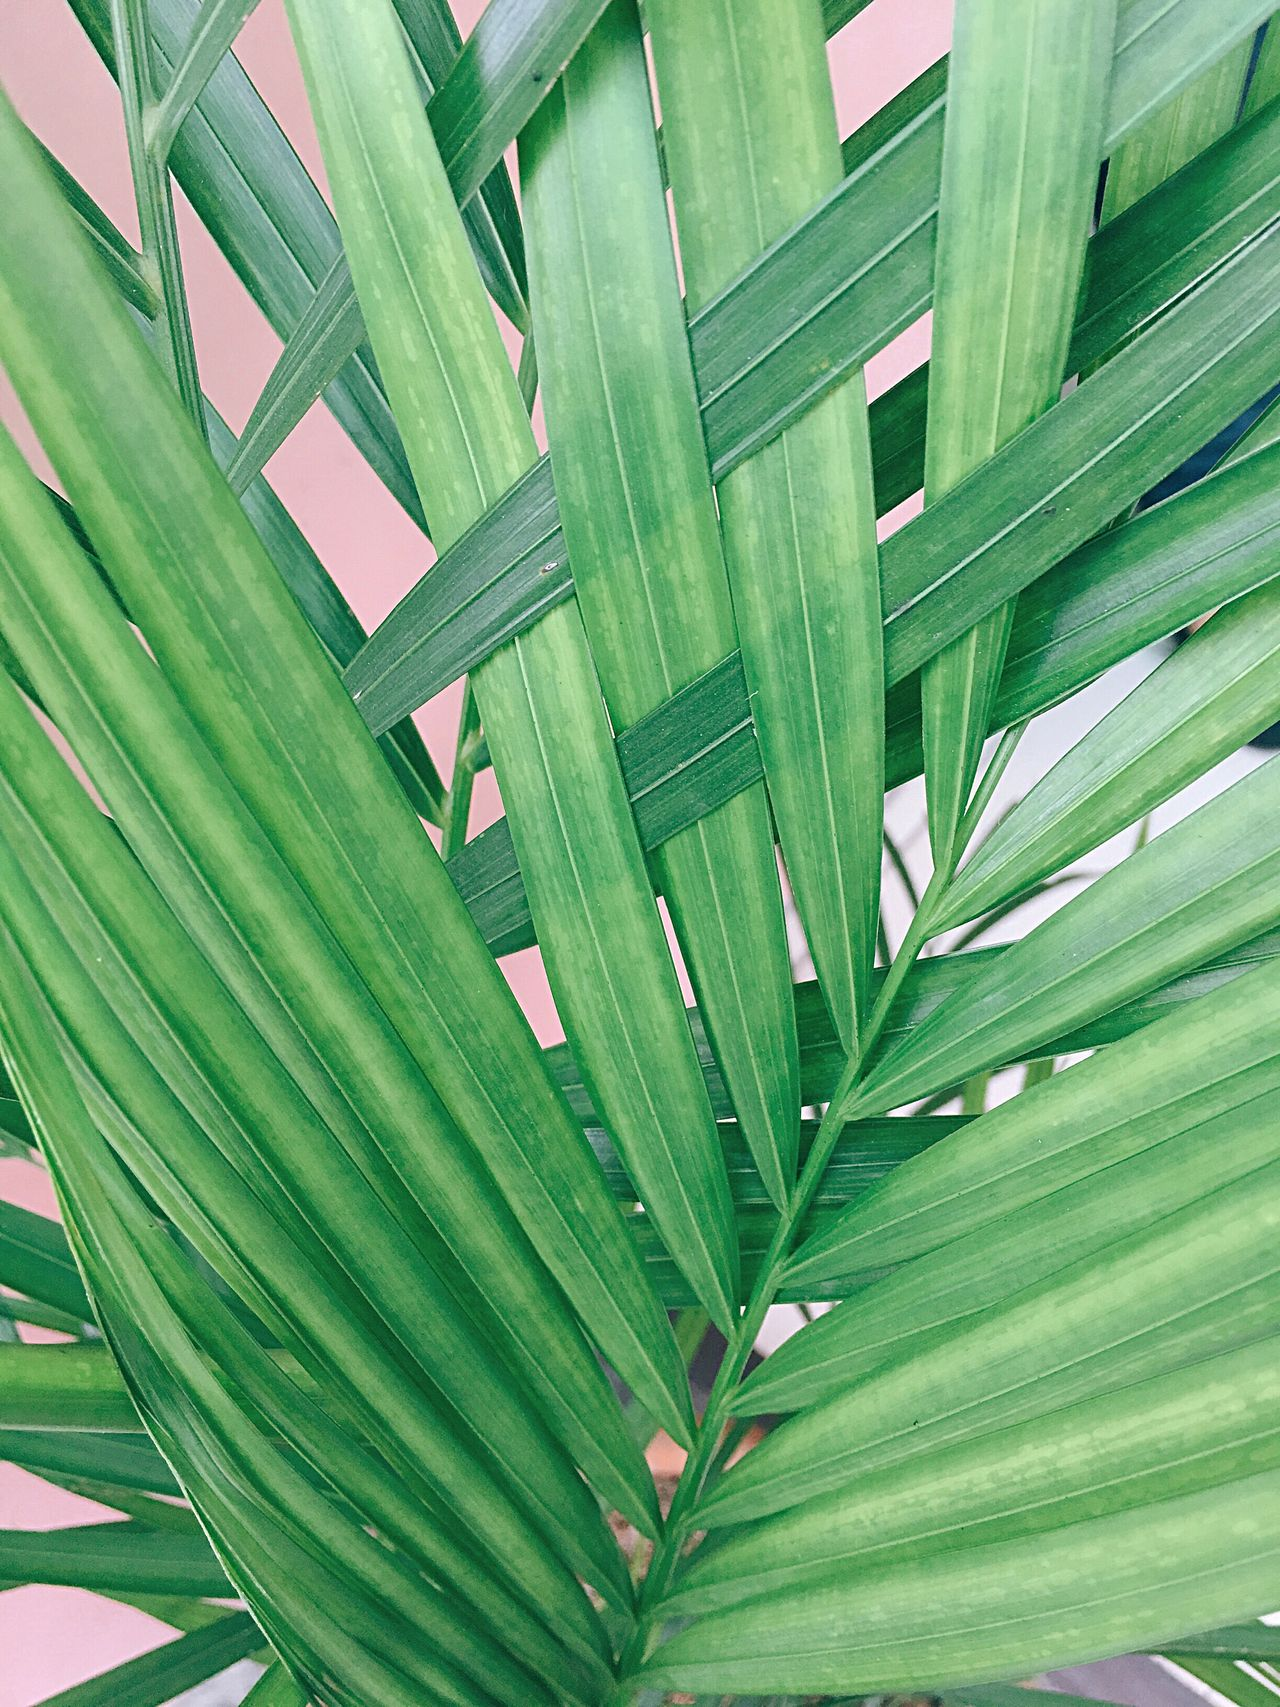 Green Color Leaf Growth Nature Palm Tree No People Backgrounds Plant Close-up Tree Day Outdoors Freshness Eyeem Philippines Sommergefühle